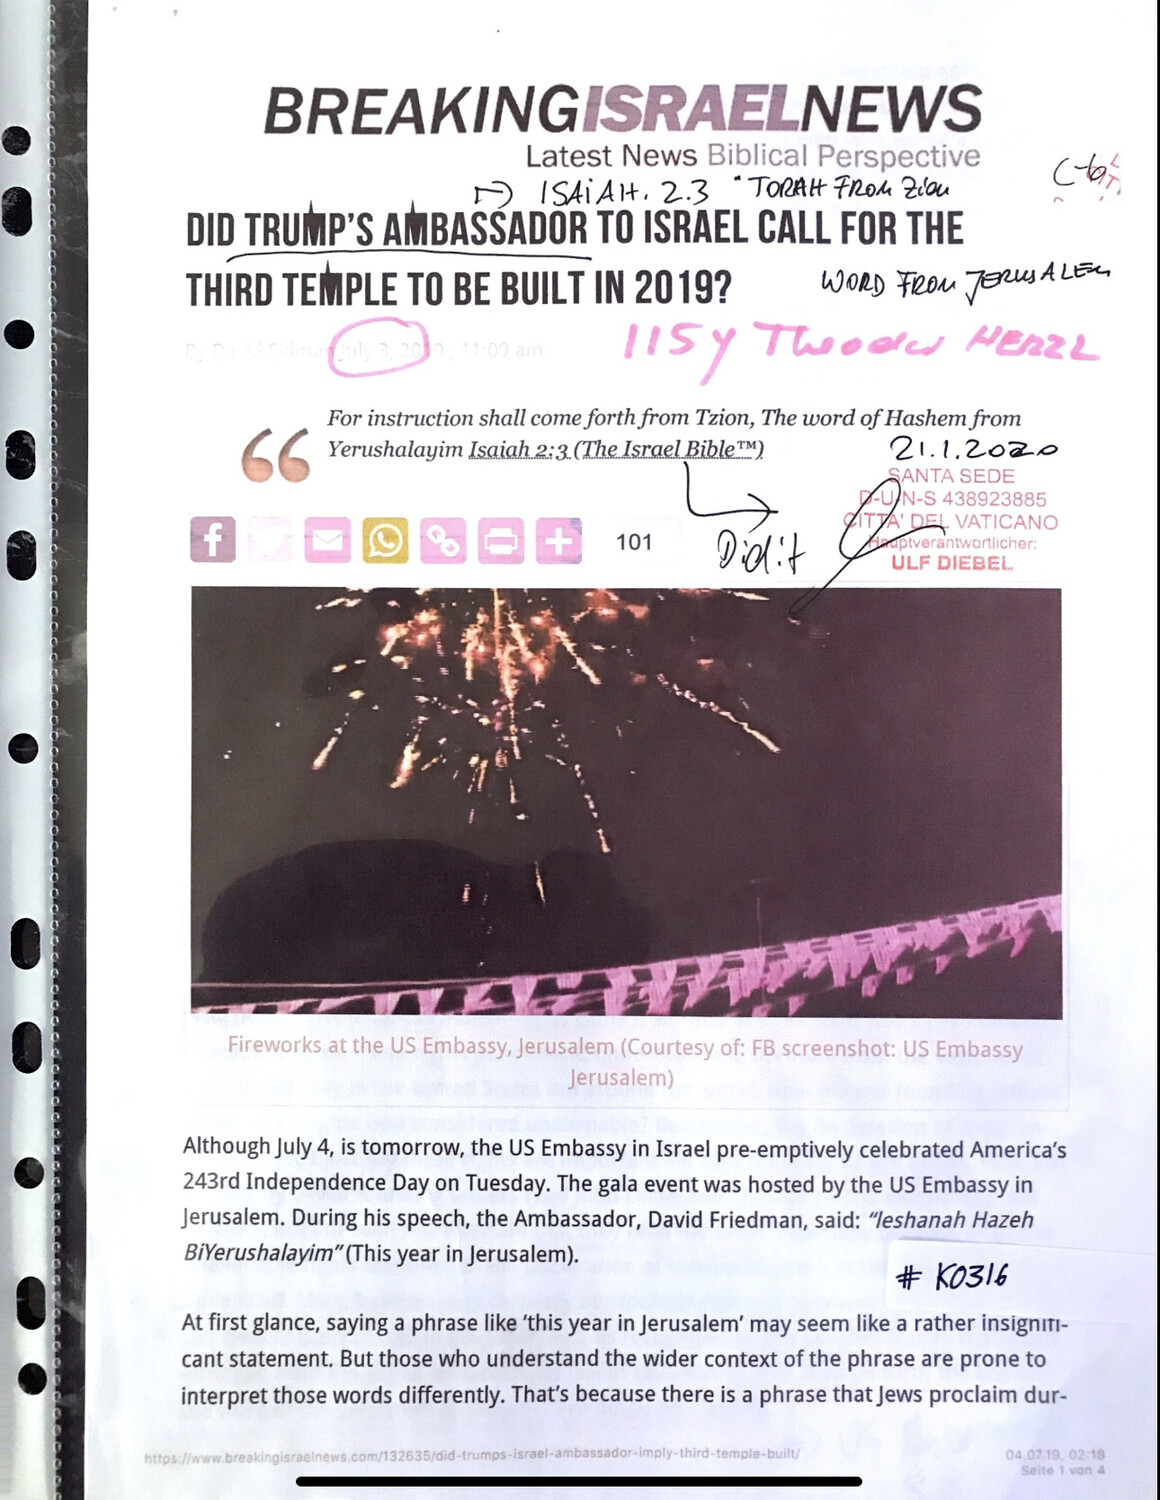 #K0316 l Breaking Israel News - Did Trump's Ambassador to Israel call for the Third Temple to be built in 2019?